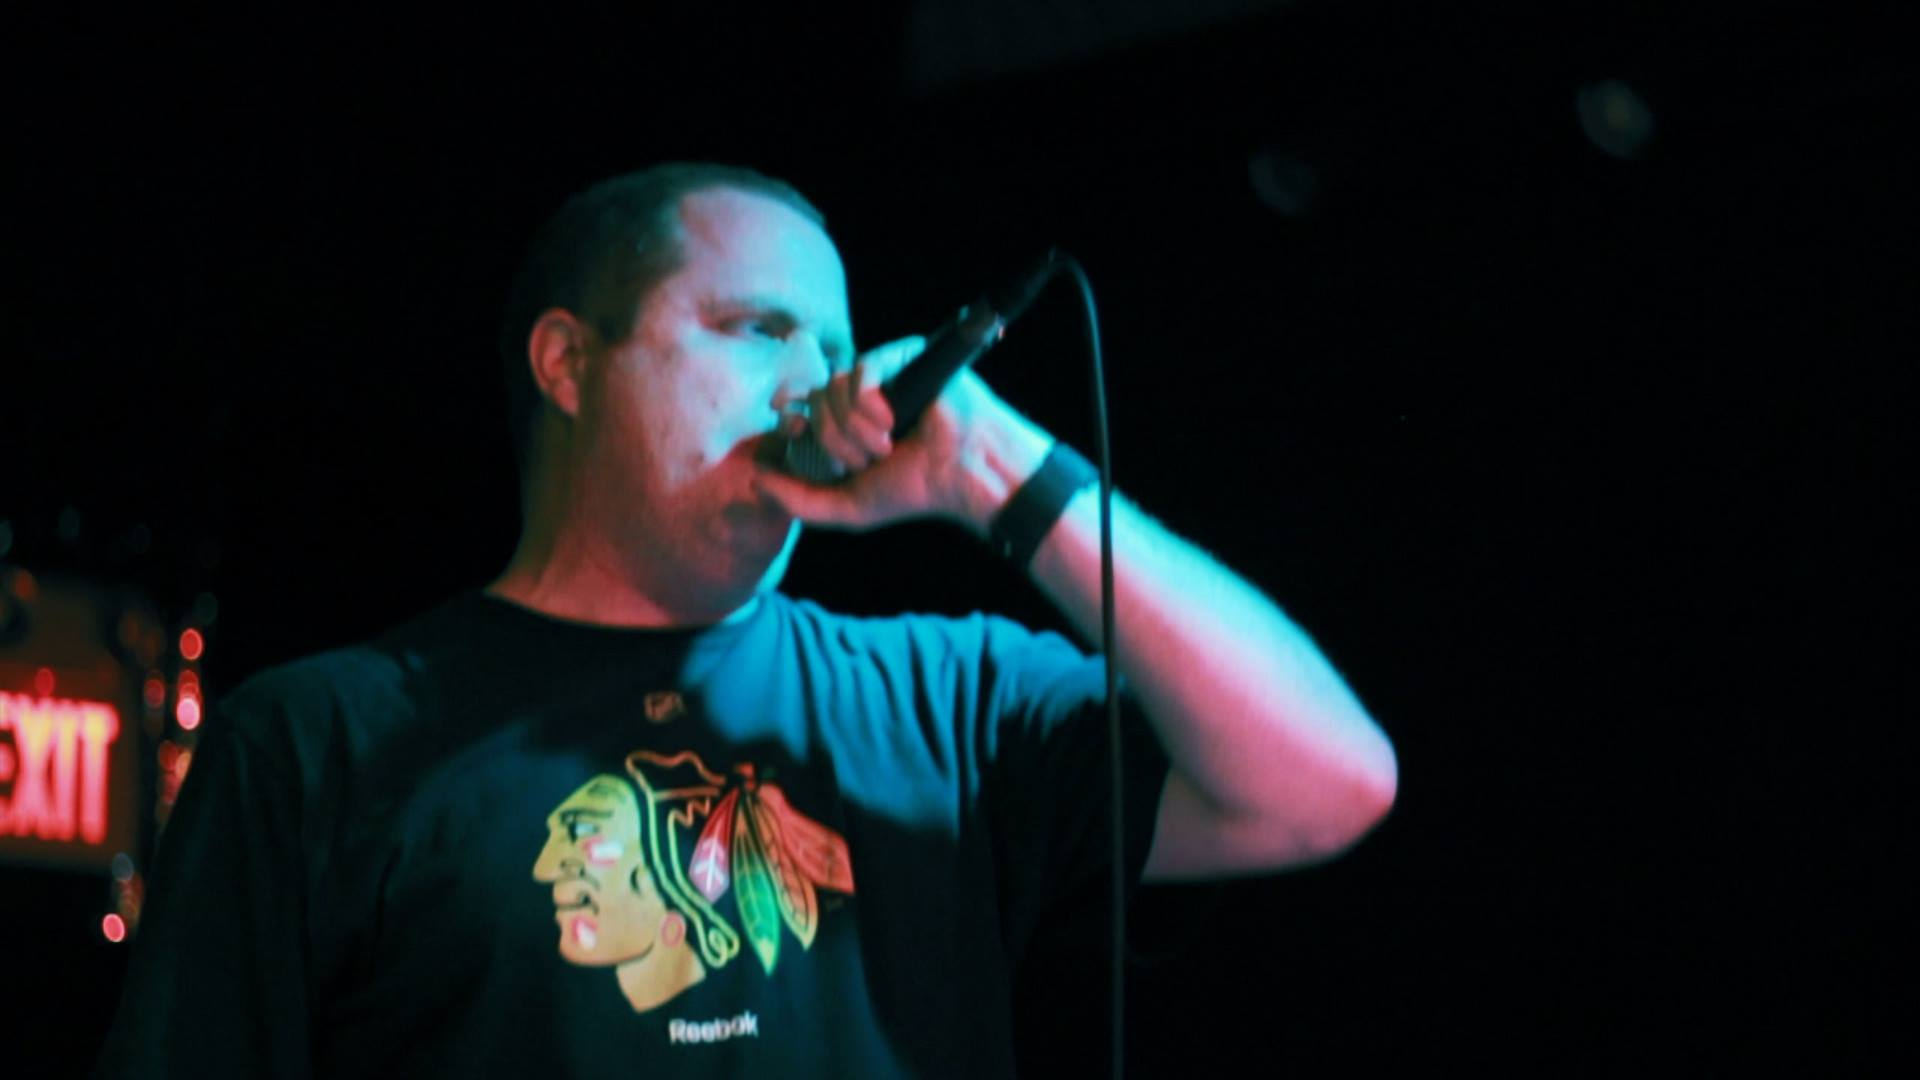 Brian performing live at the Livewire Lounge